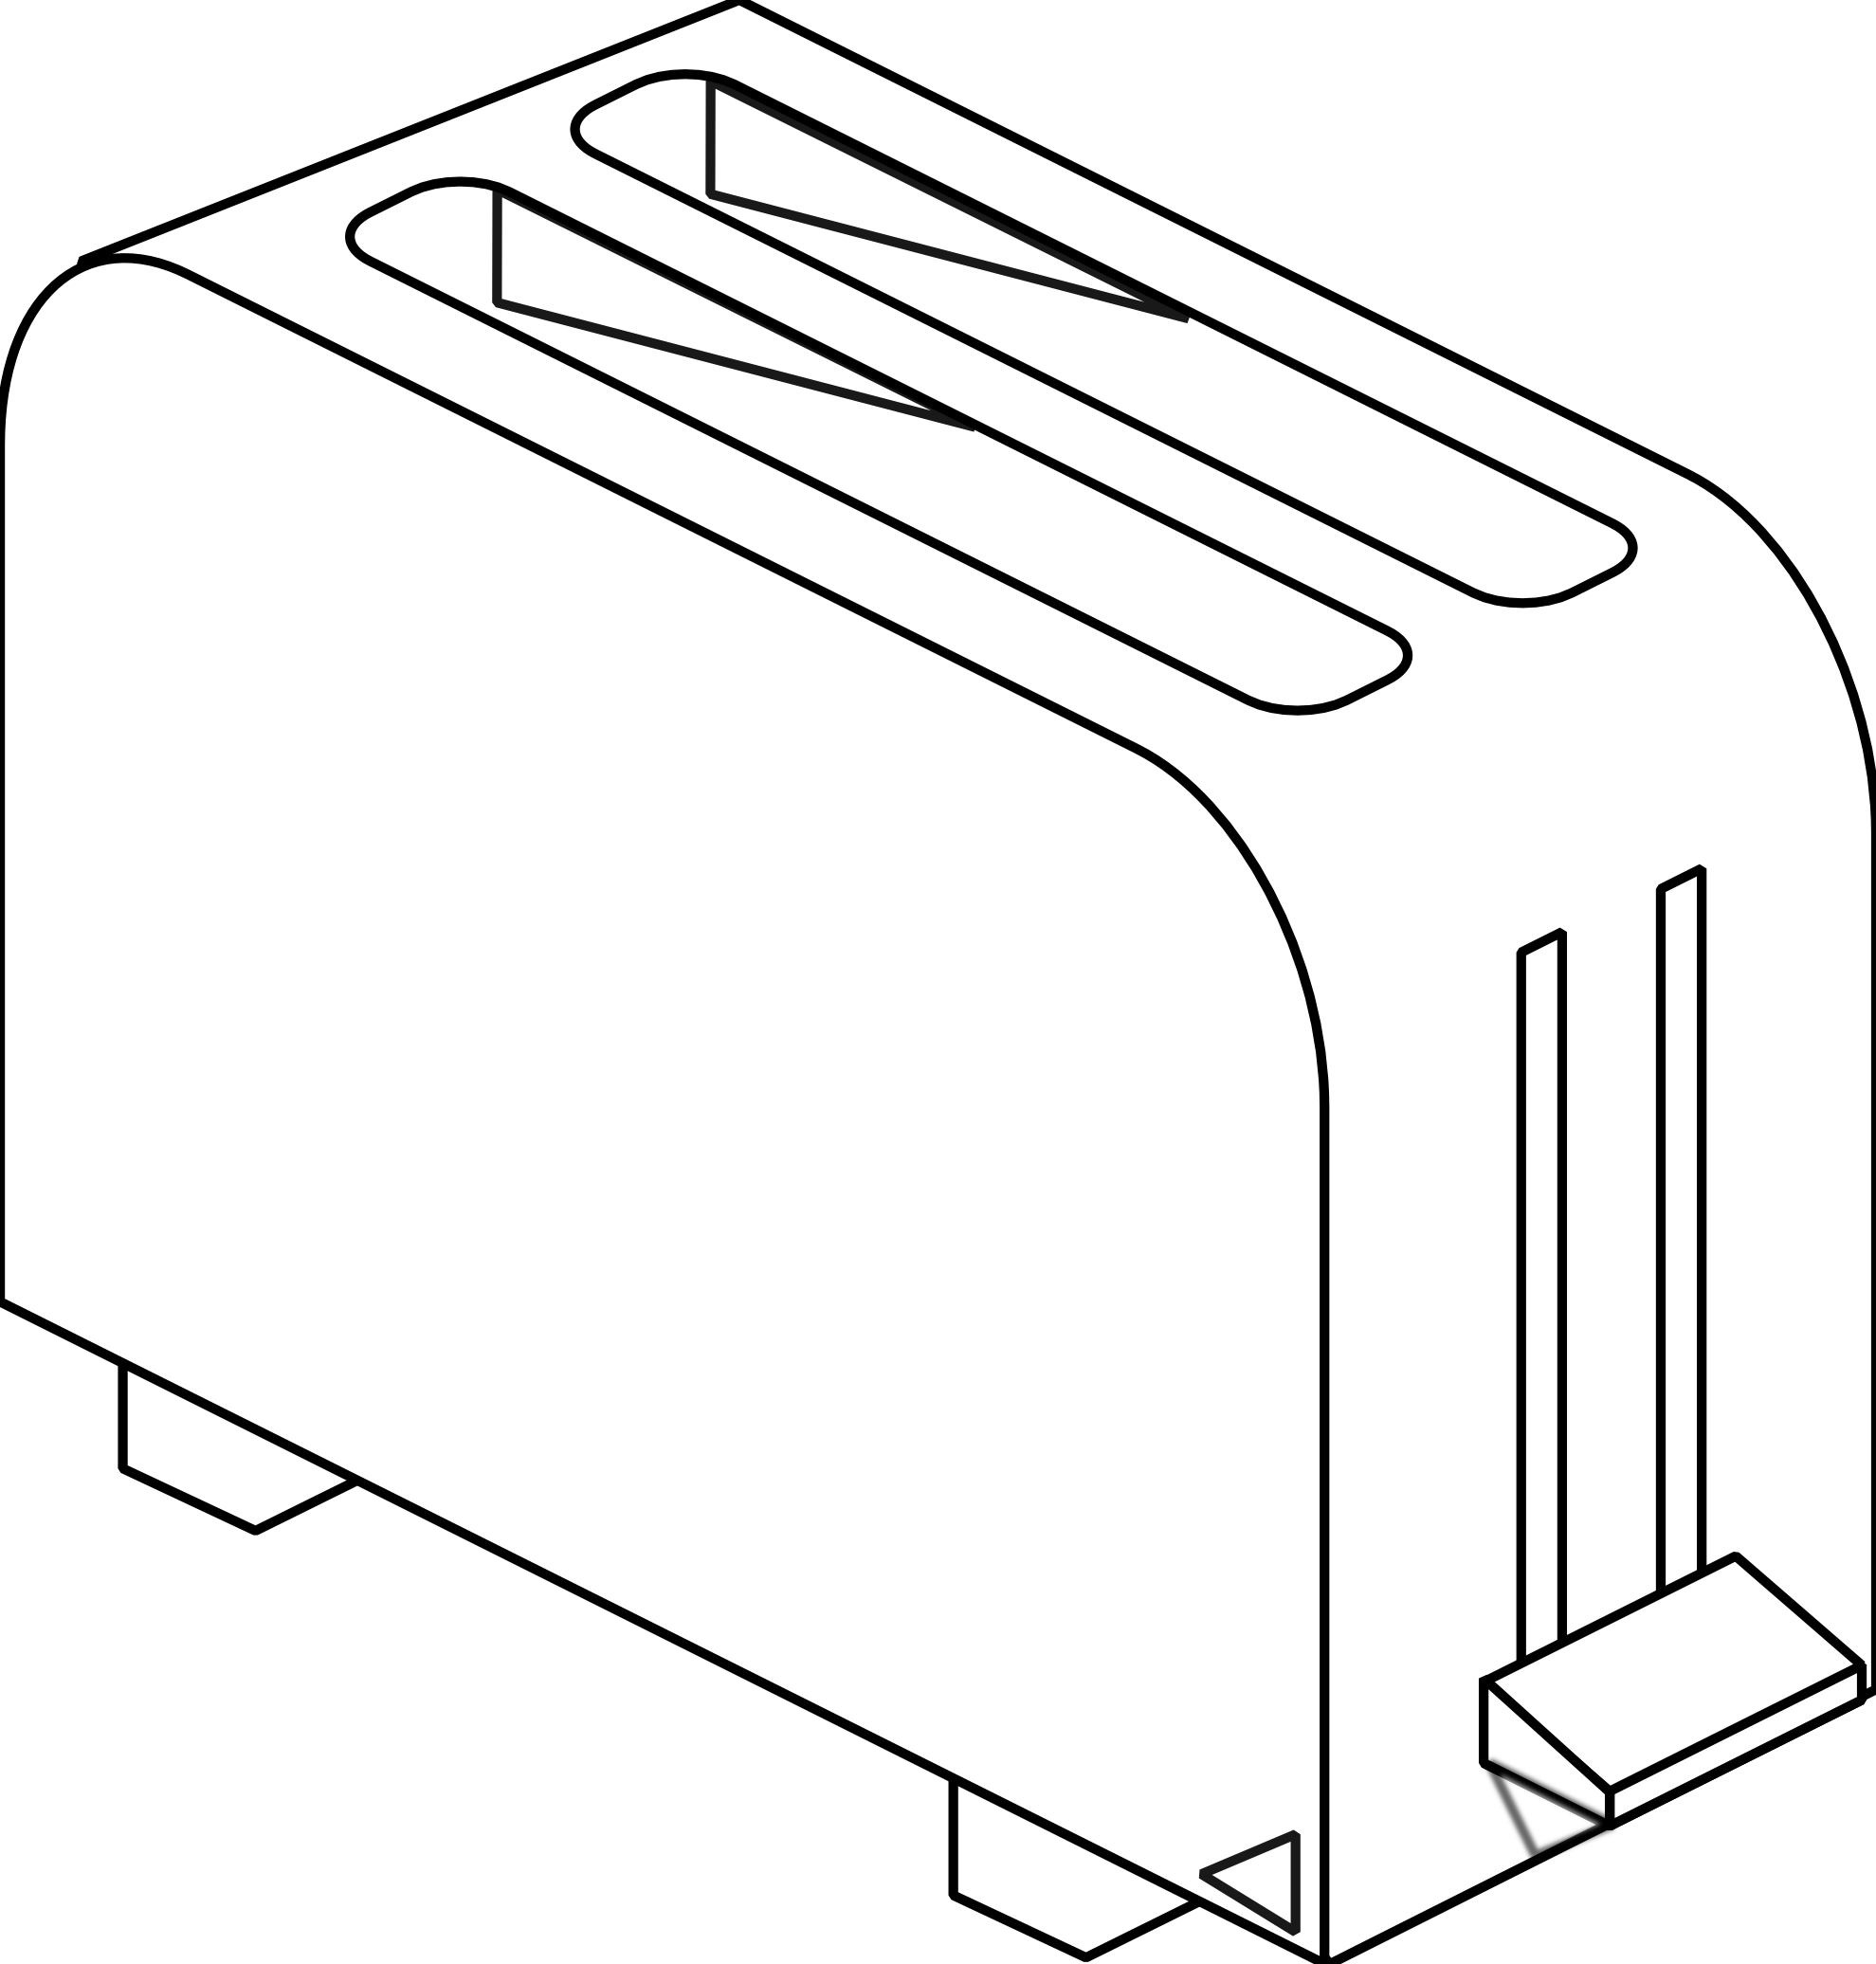 clipart free library Toaster clipart sketch. Black and white coloring